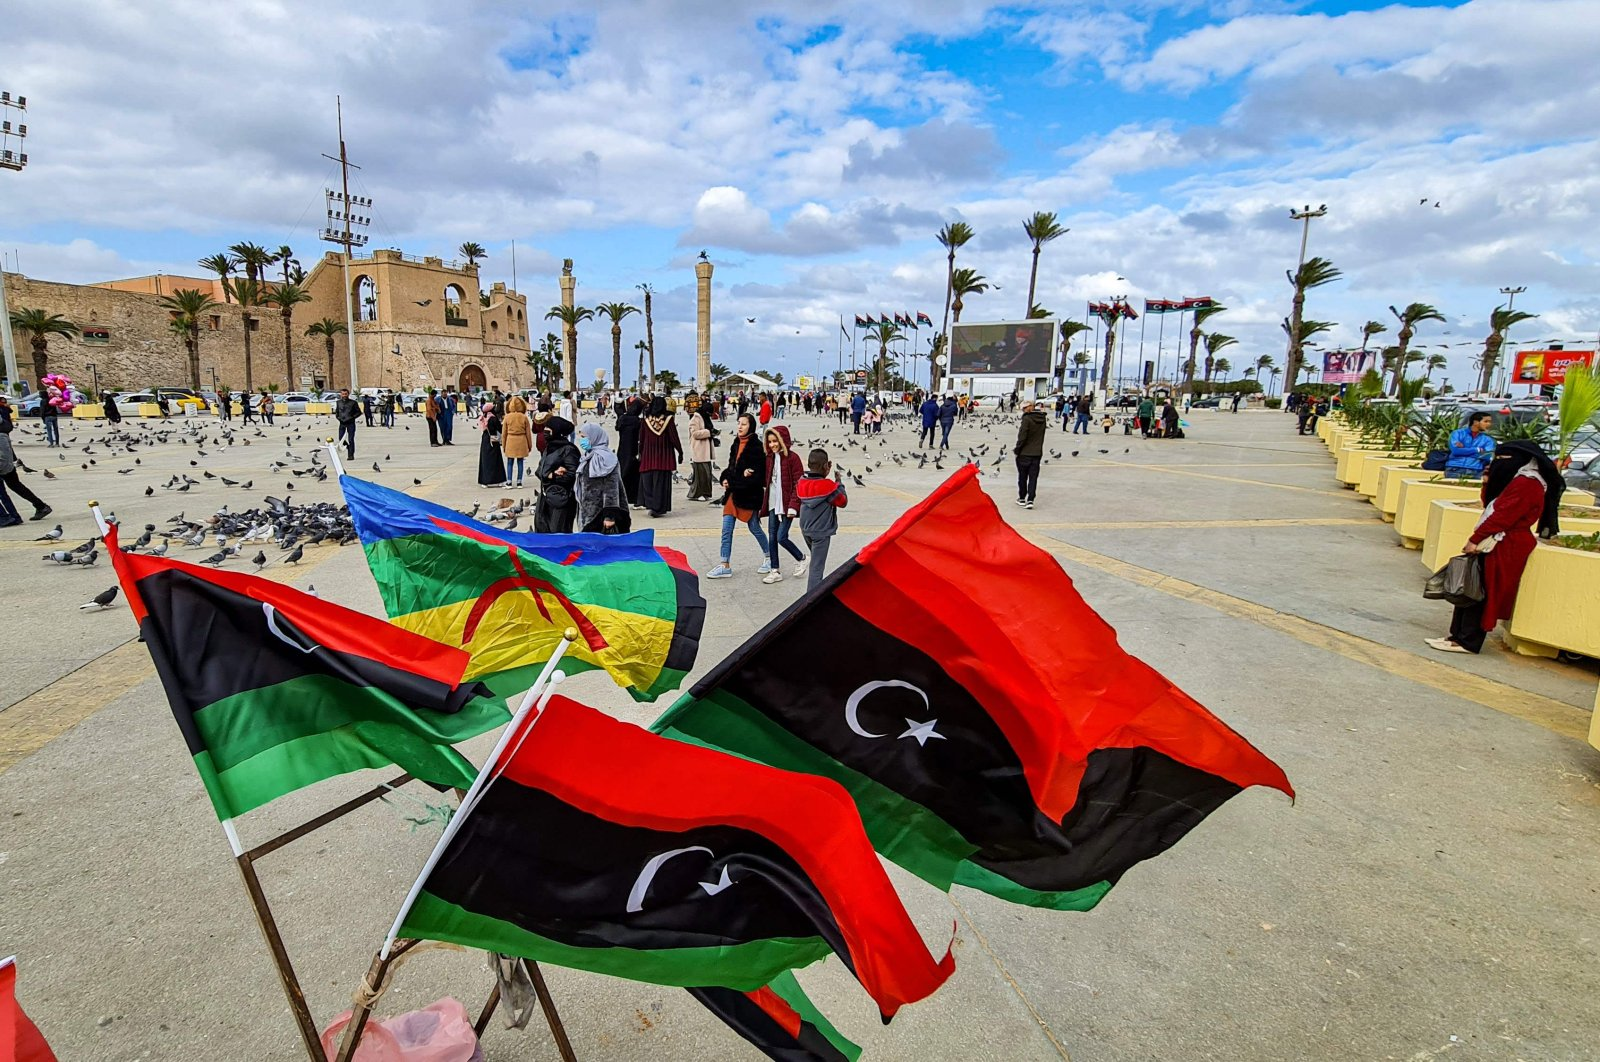 Amazigh and Libyan national flags are seen fluttering at the Martyrs' Square in the center of Libya's capital Tripoli, Feb. 14, 2021. (AFP Photo)